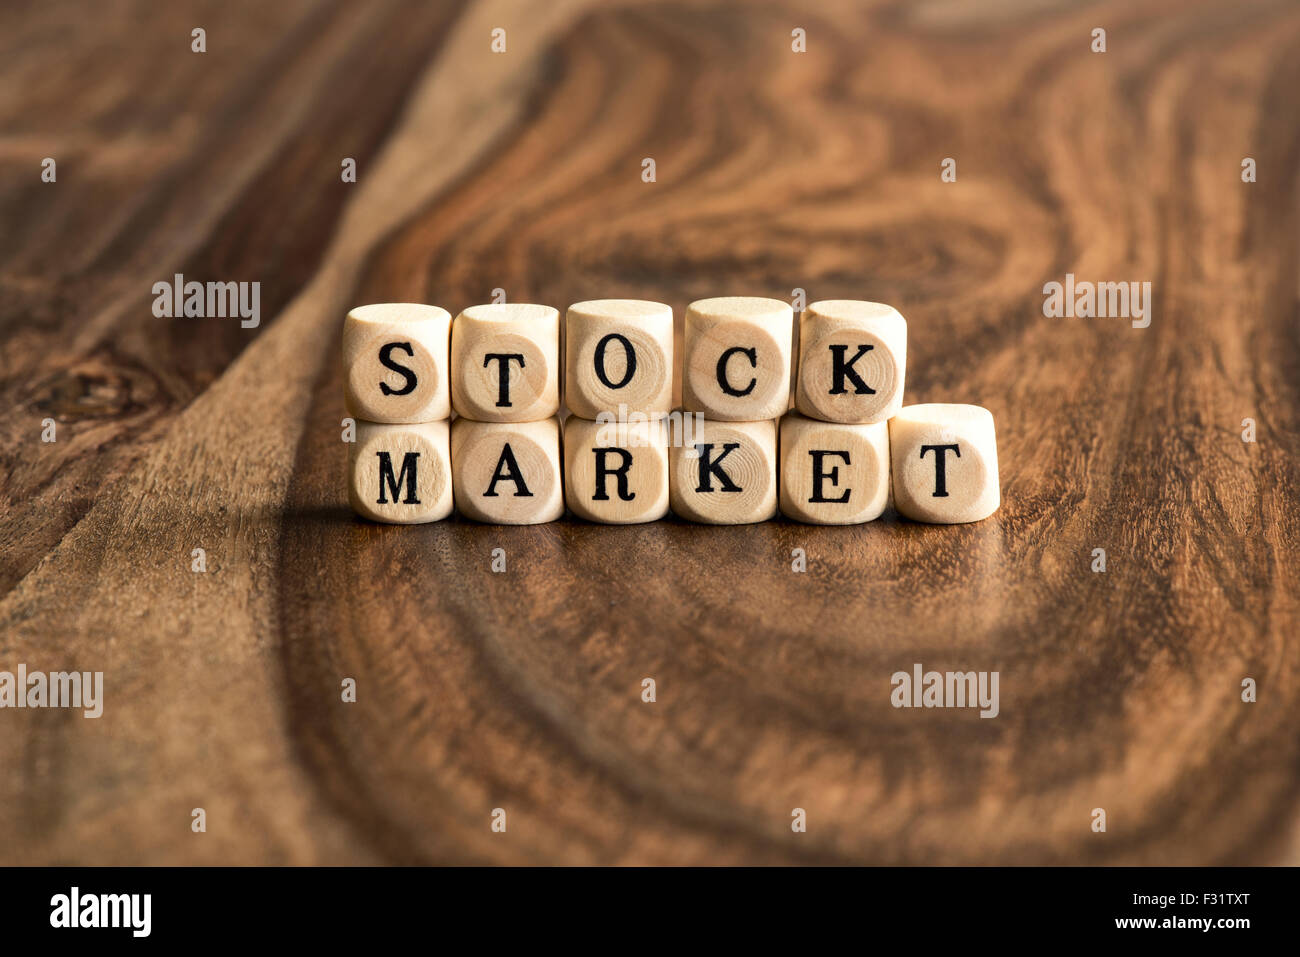 STOCK MARKET word background on wood blocks - Stock Image